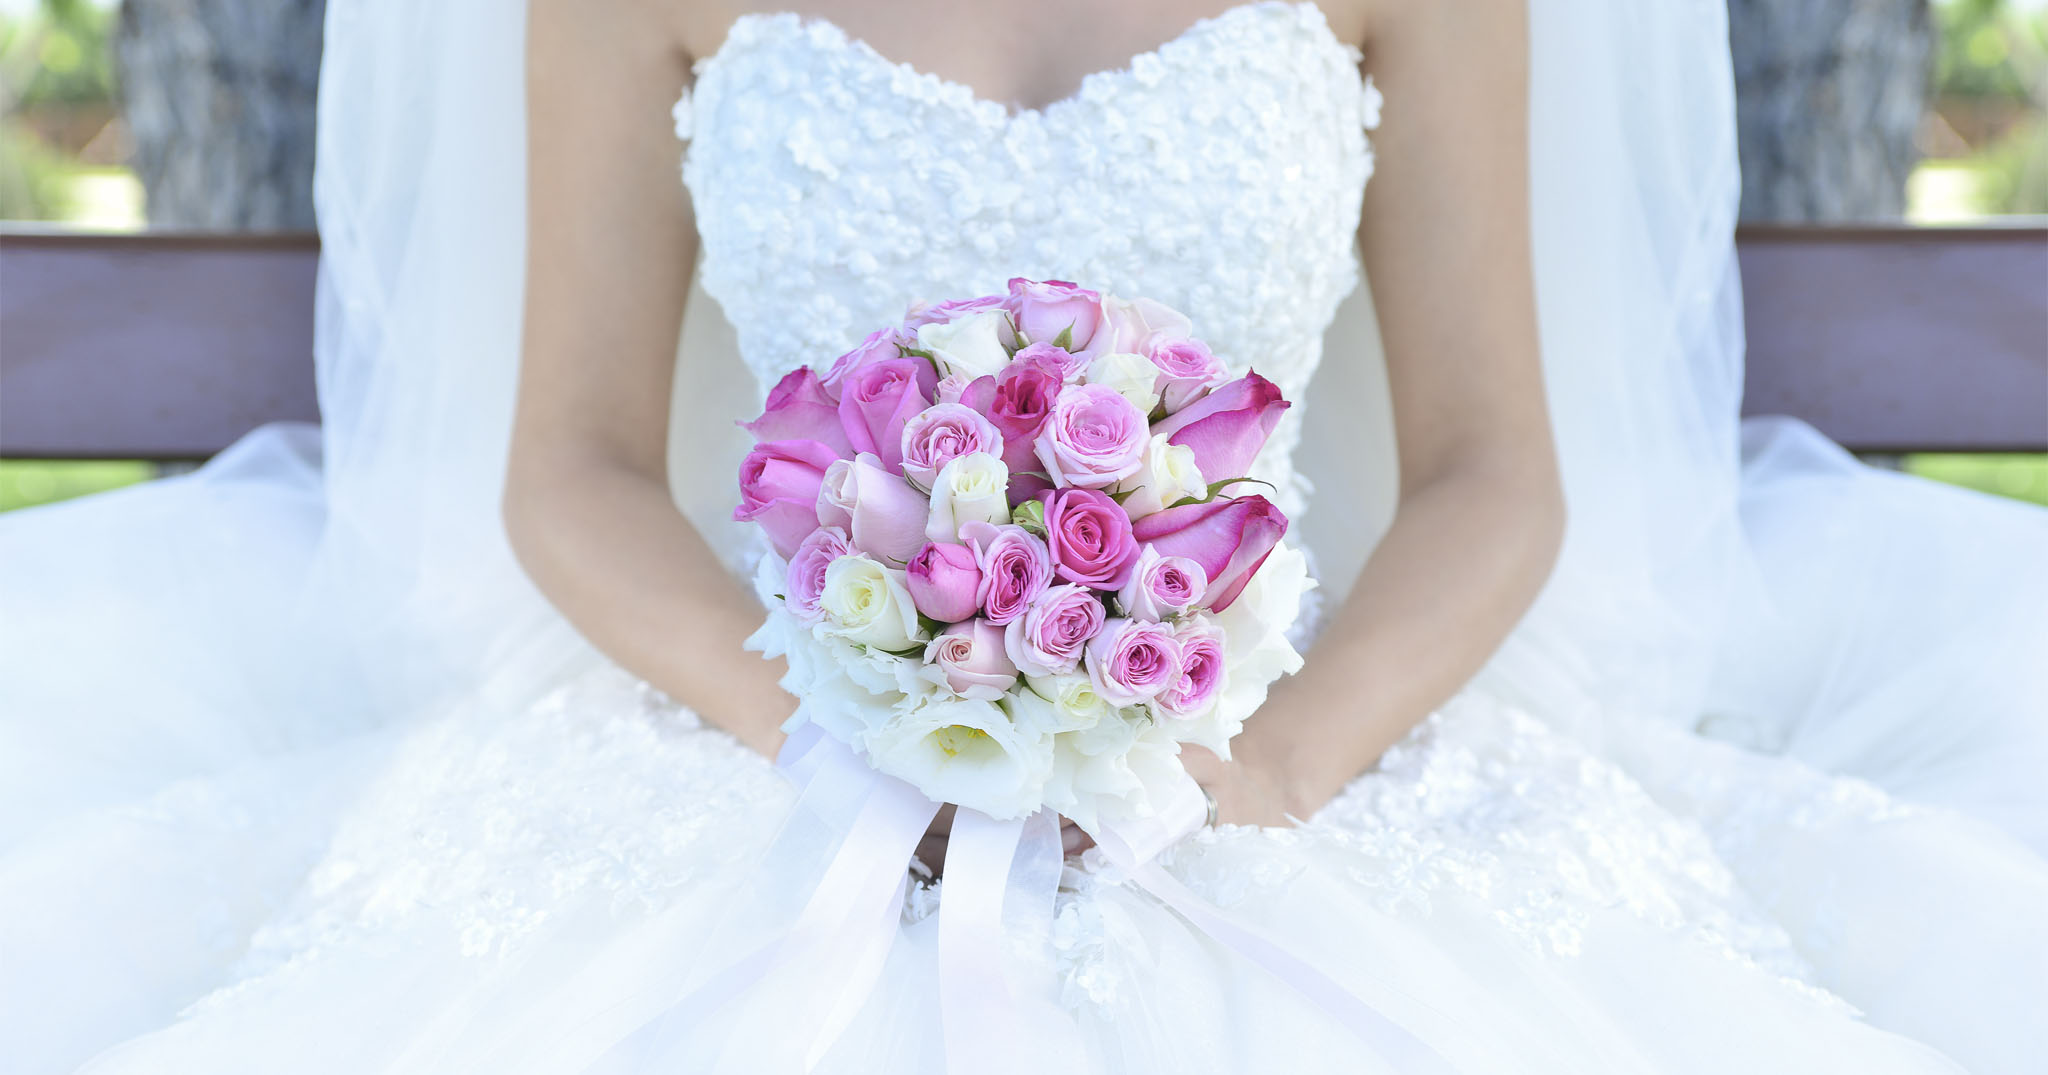 BridalPulse: The Bridal Sale of the Year: The National Bridal Indoor Sidewalk Sale is Happening November 17th   Photo: iStock   Follow @bridalpulse for more wedding inspiration!